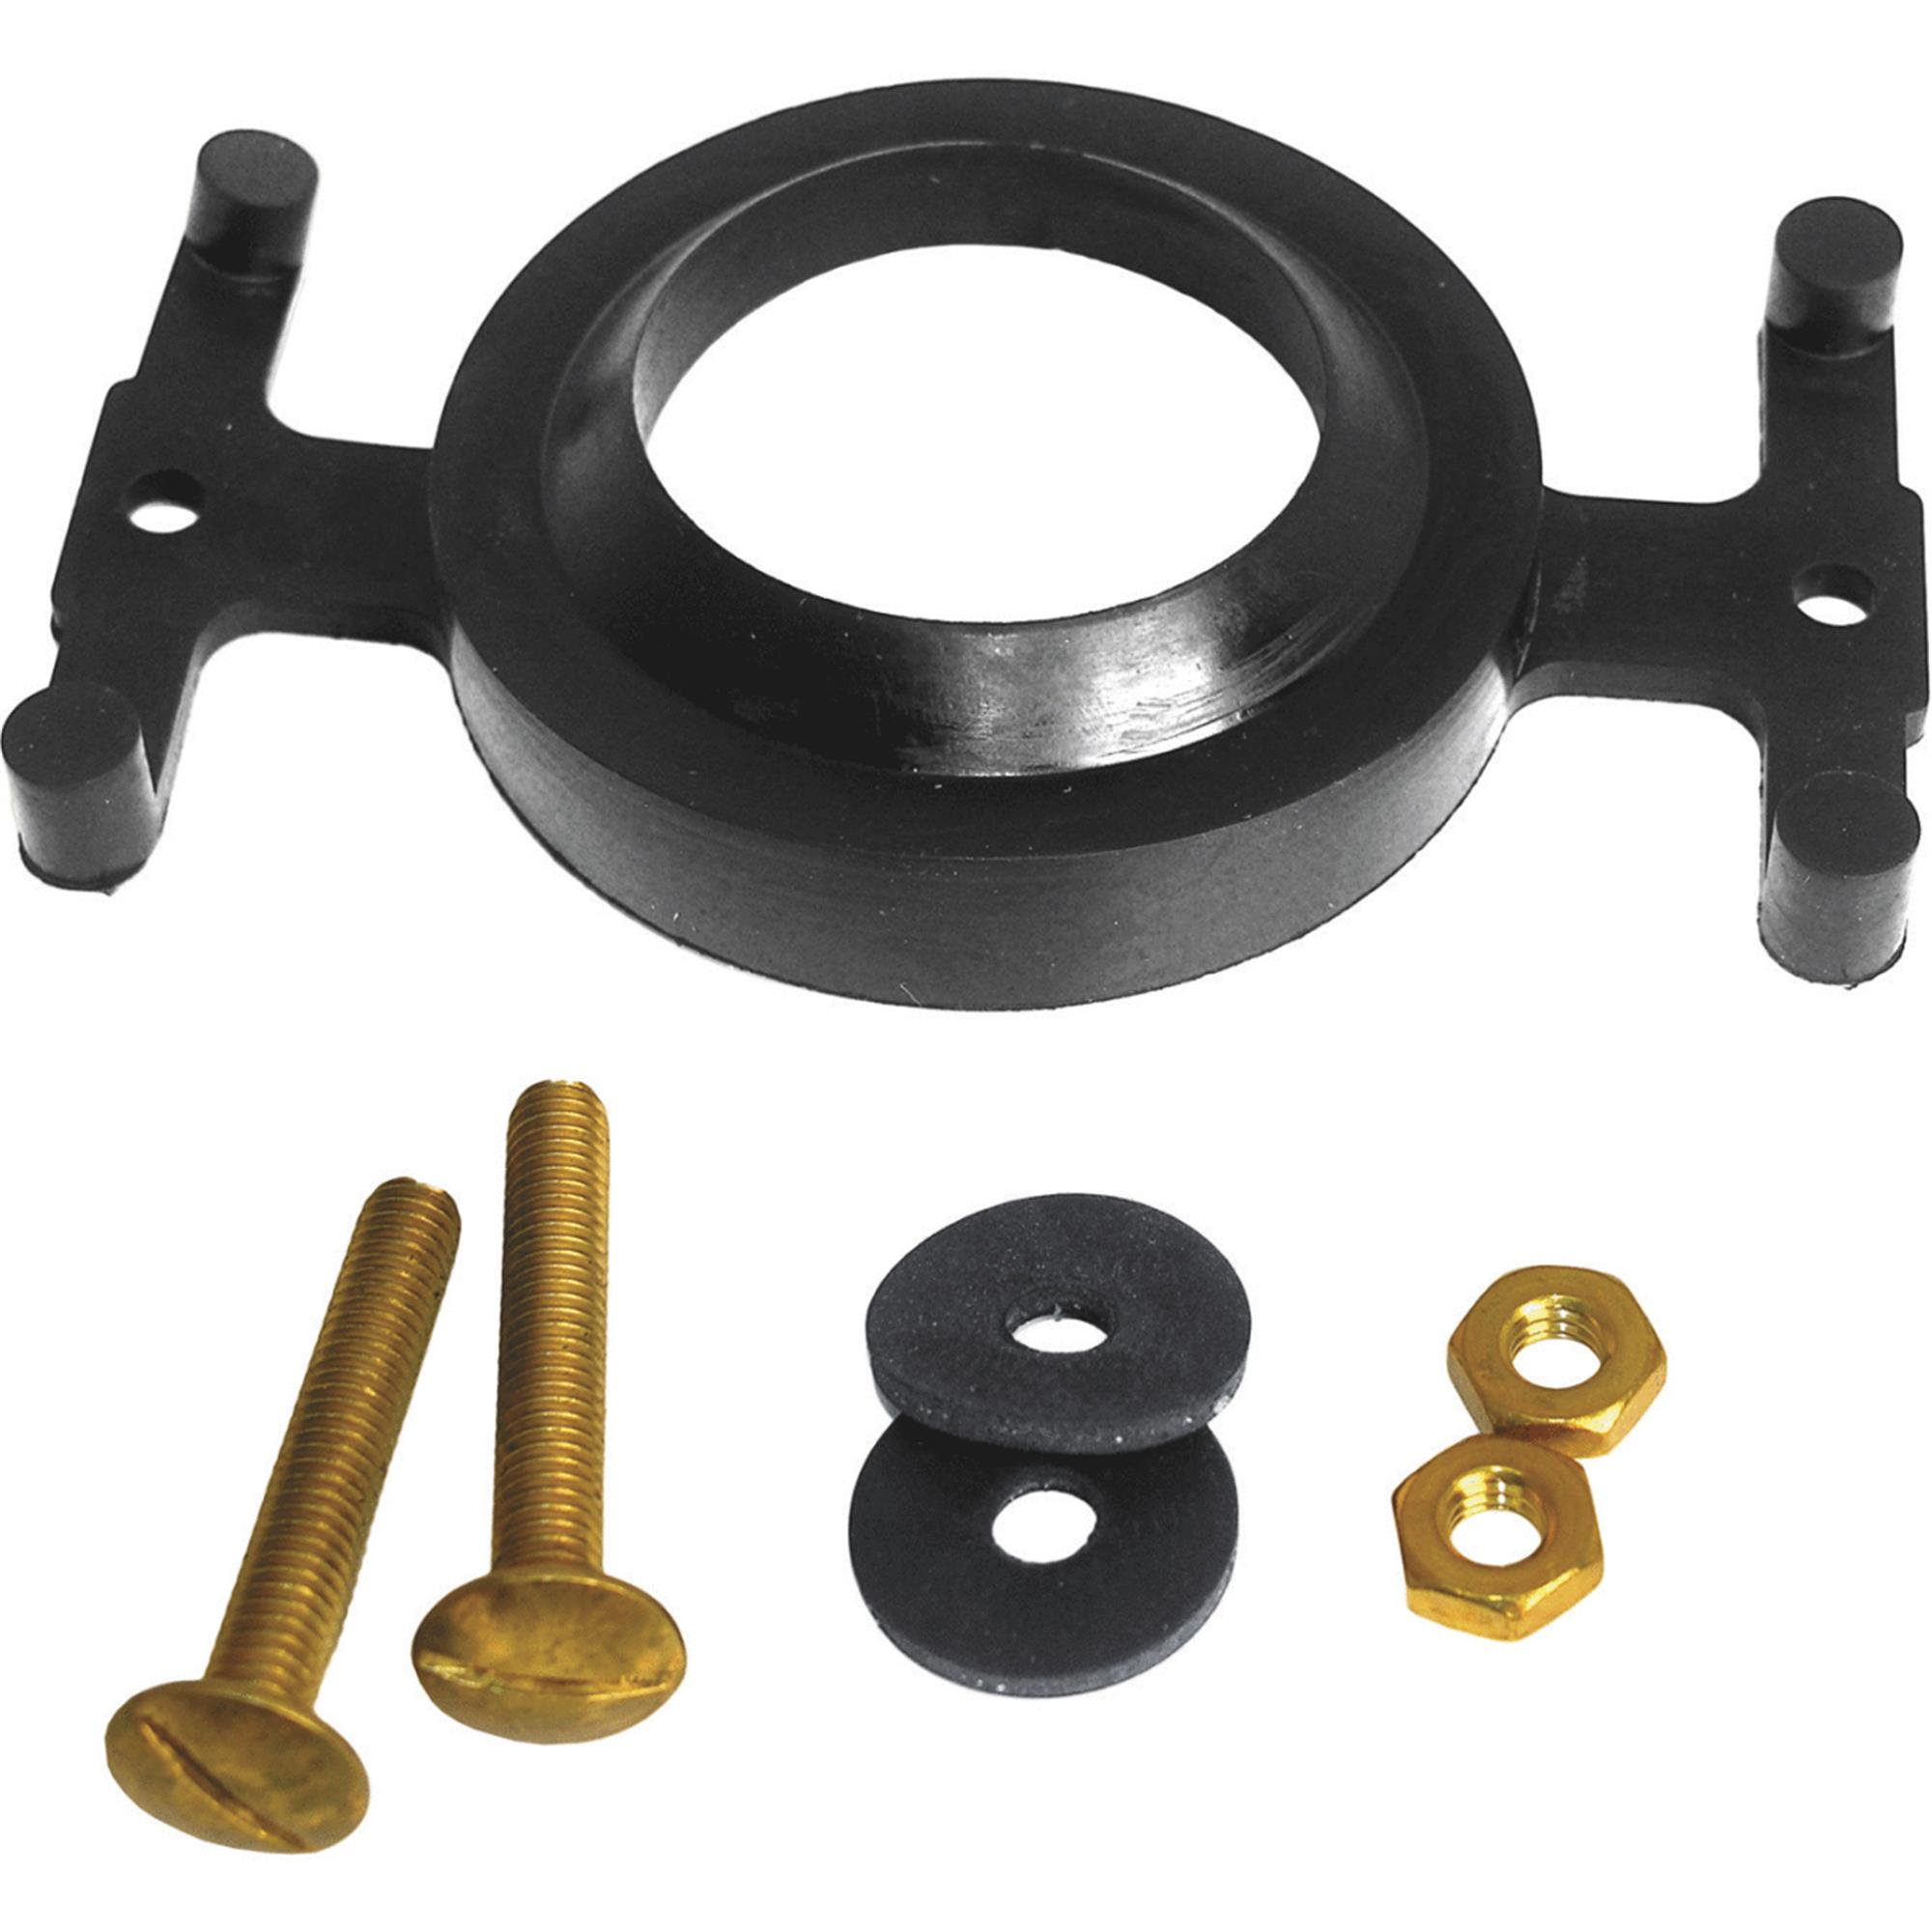 Lasco Eljer Tank To Bowl Bolts And Gasket With Ears